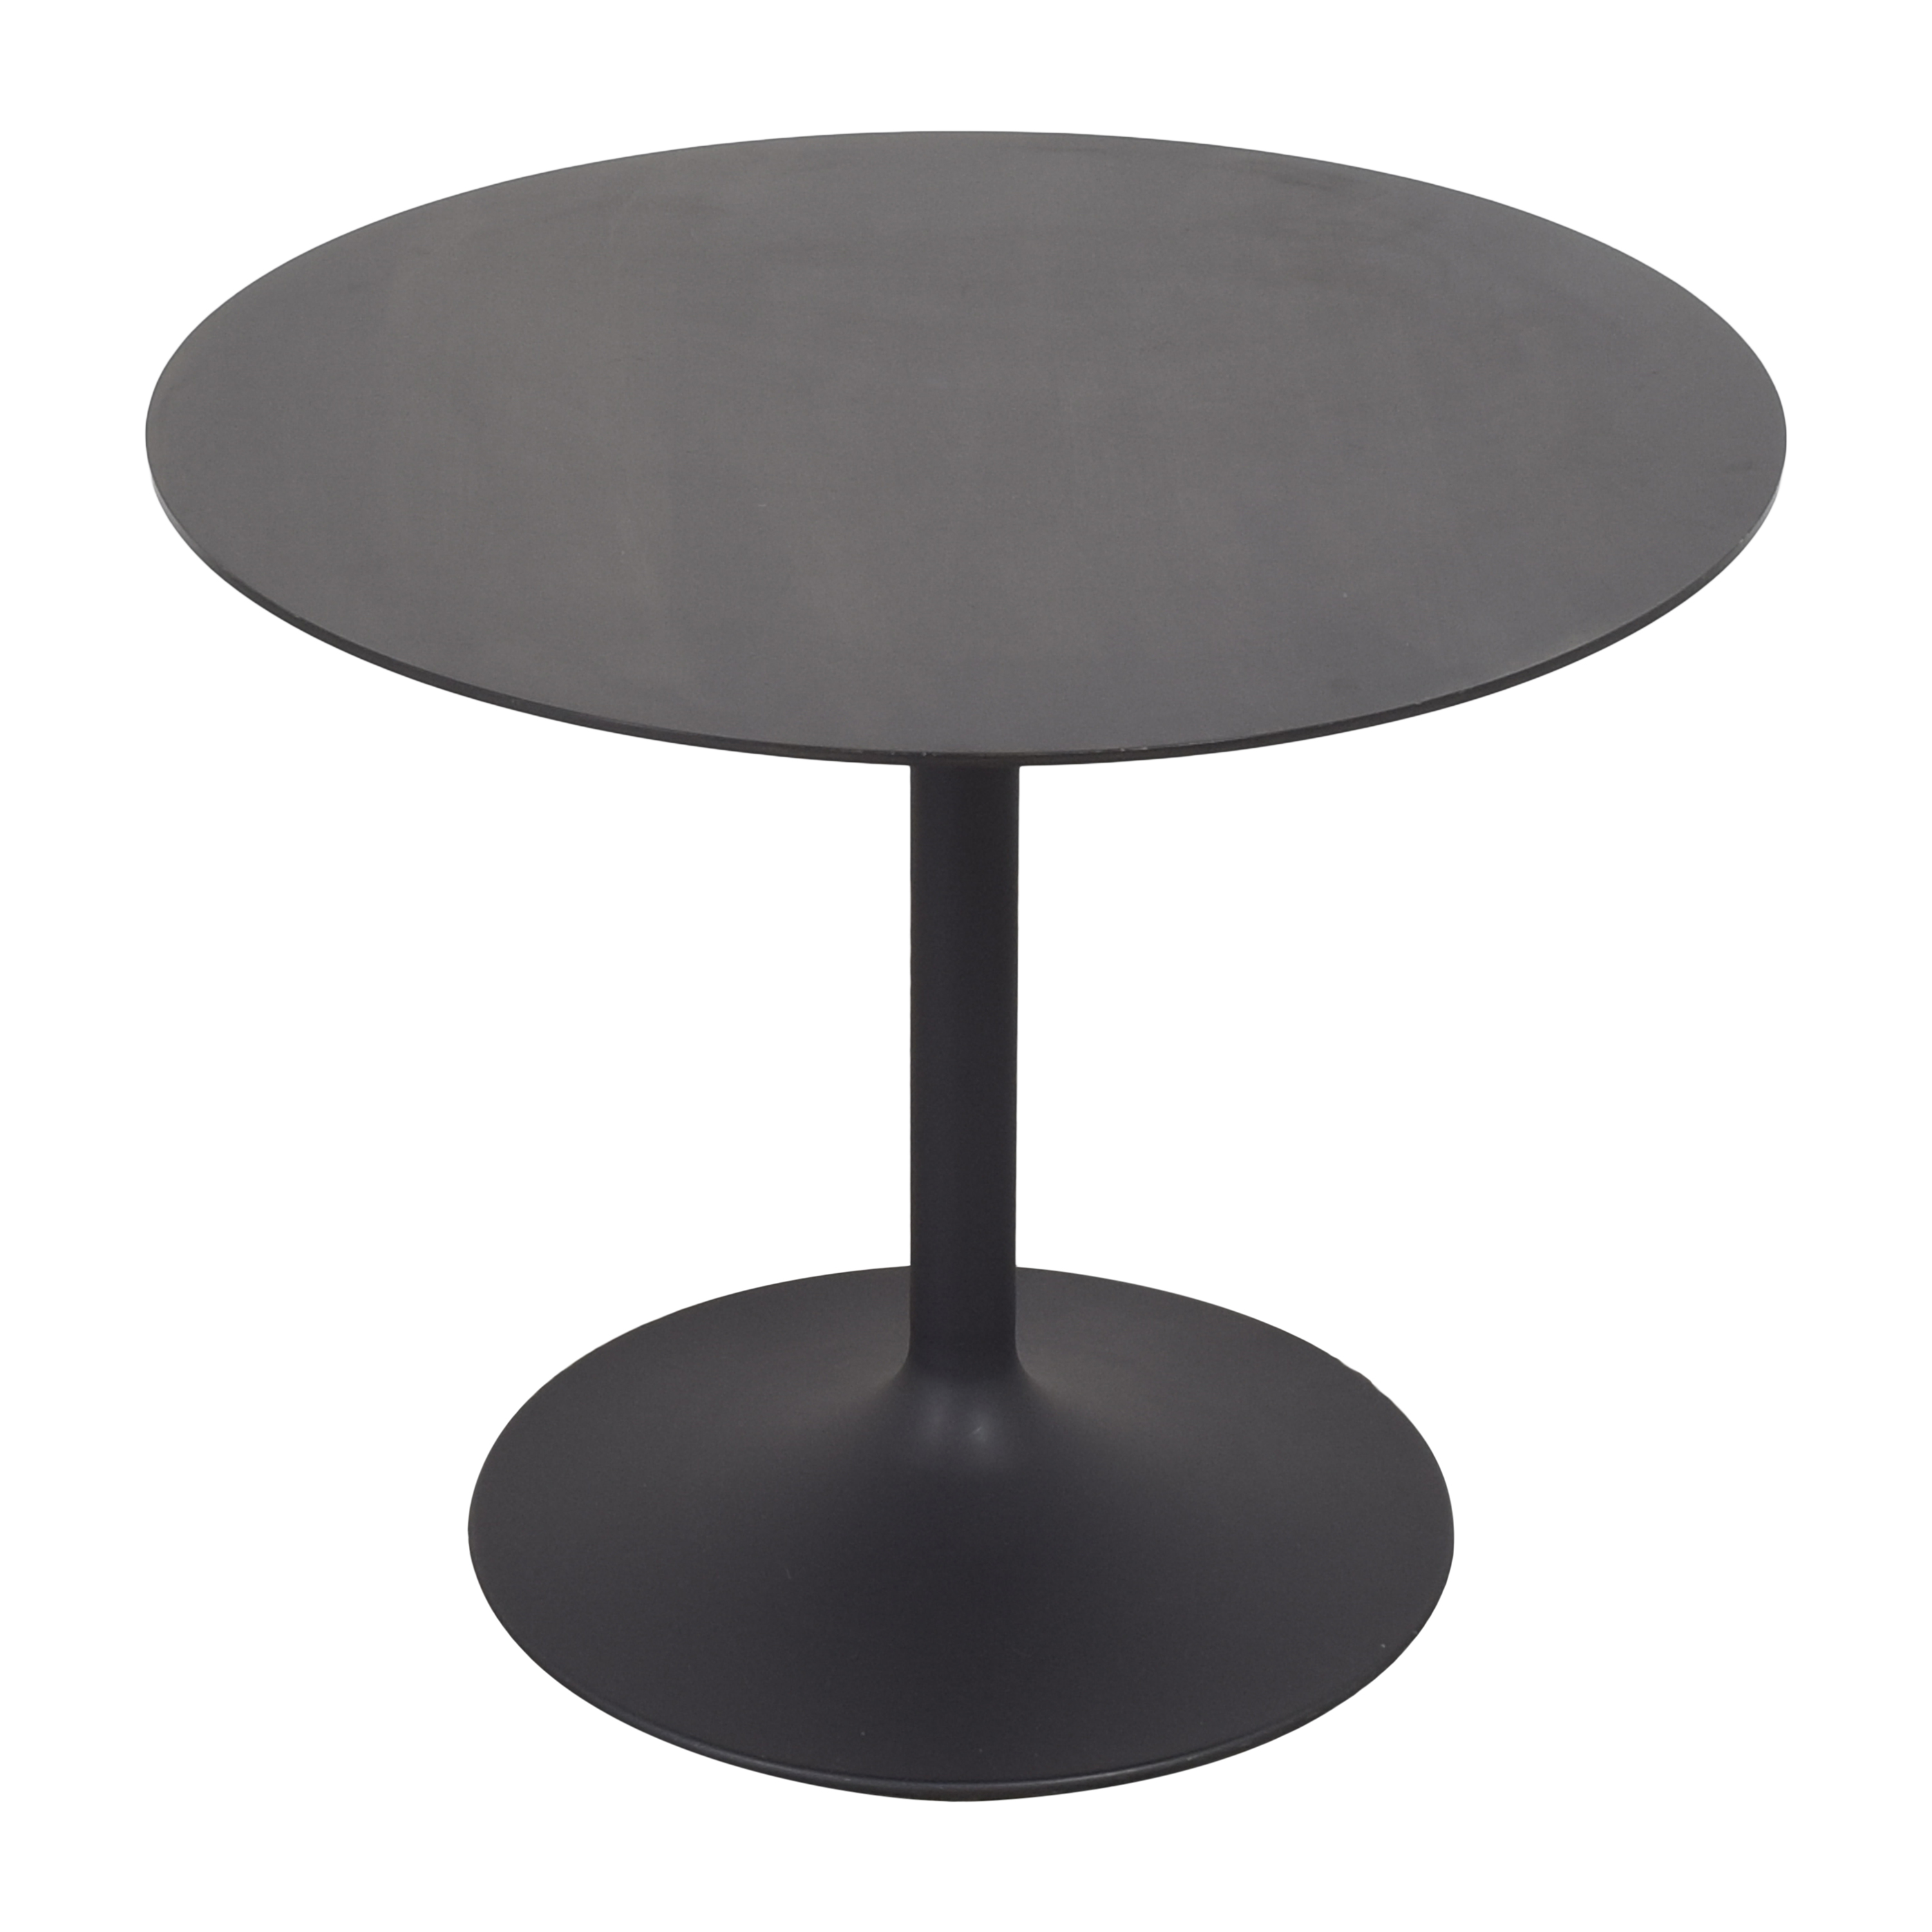 Room & Board Room & Board Aria Round Dining Table second hand